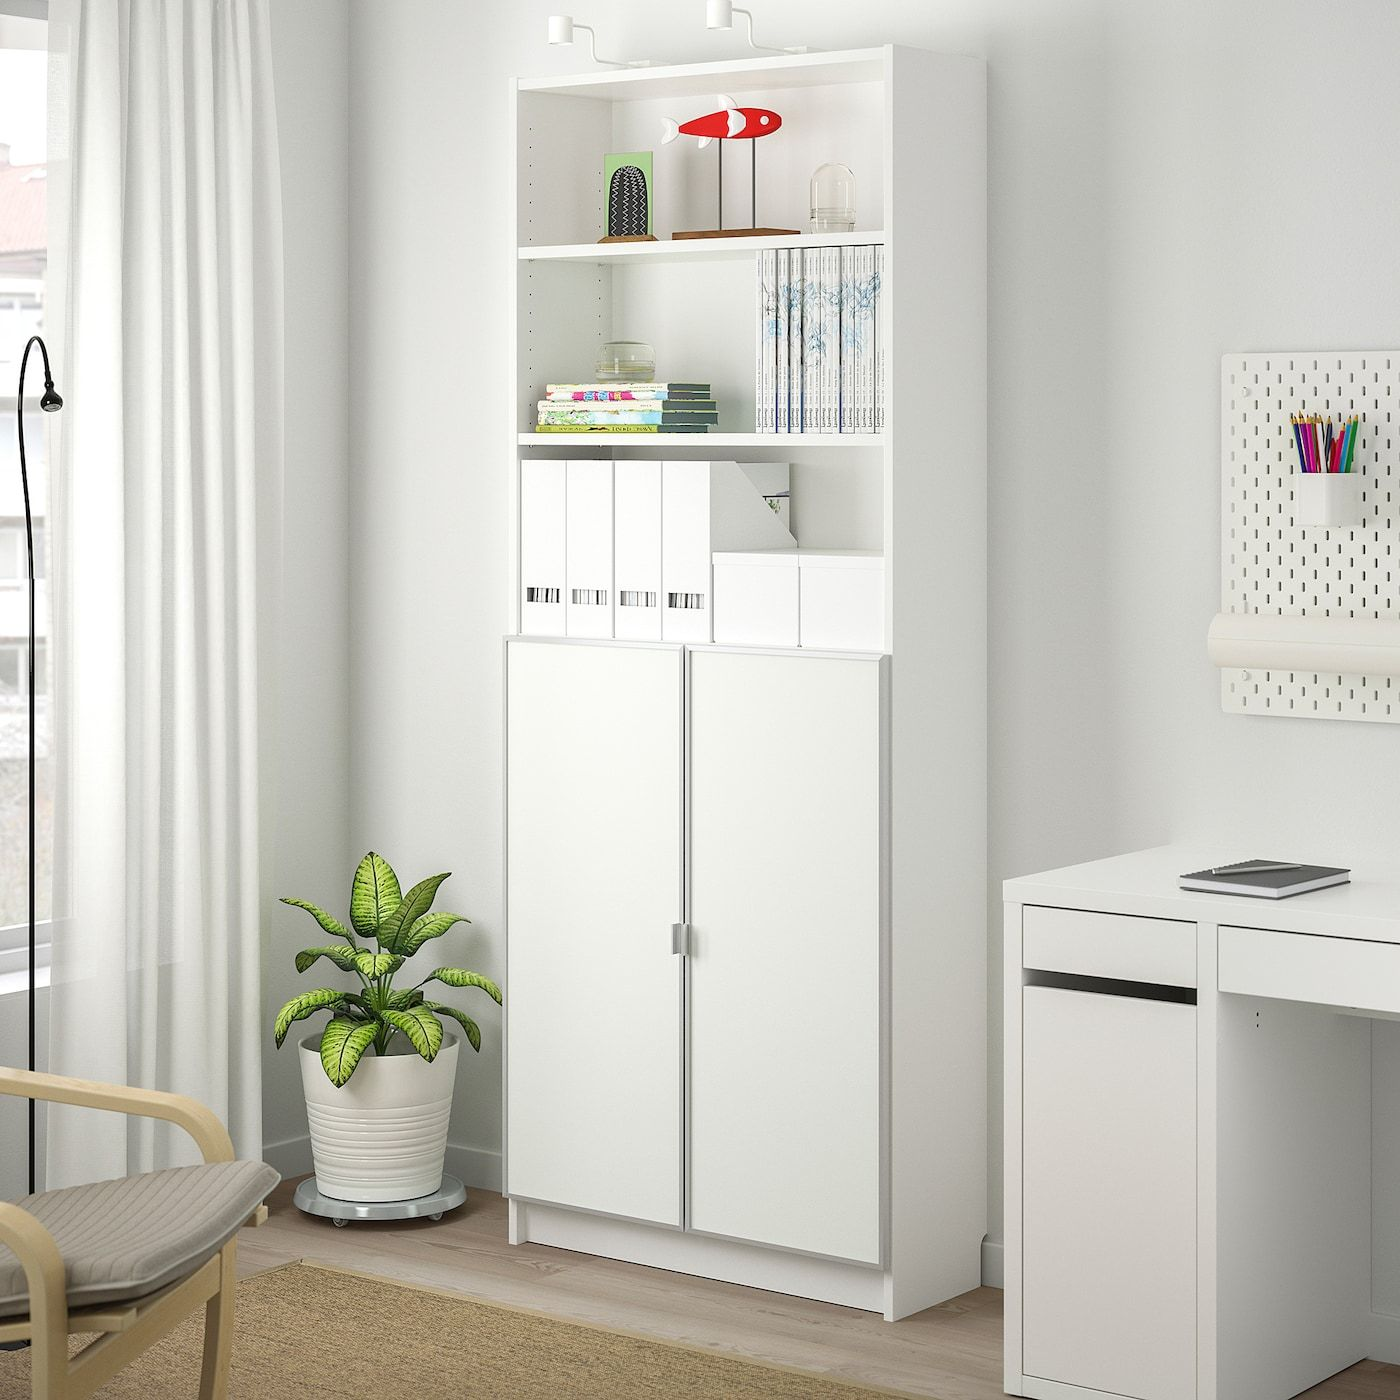 IKEA BILLY / MORLIDEN bookcase with glass doors – white / glass